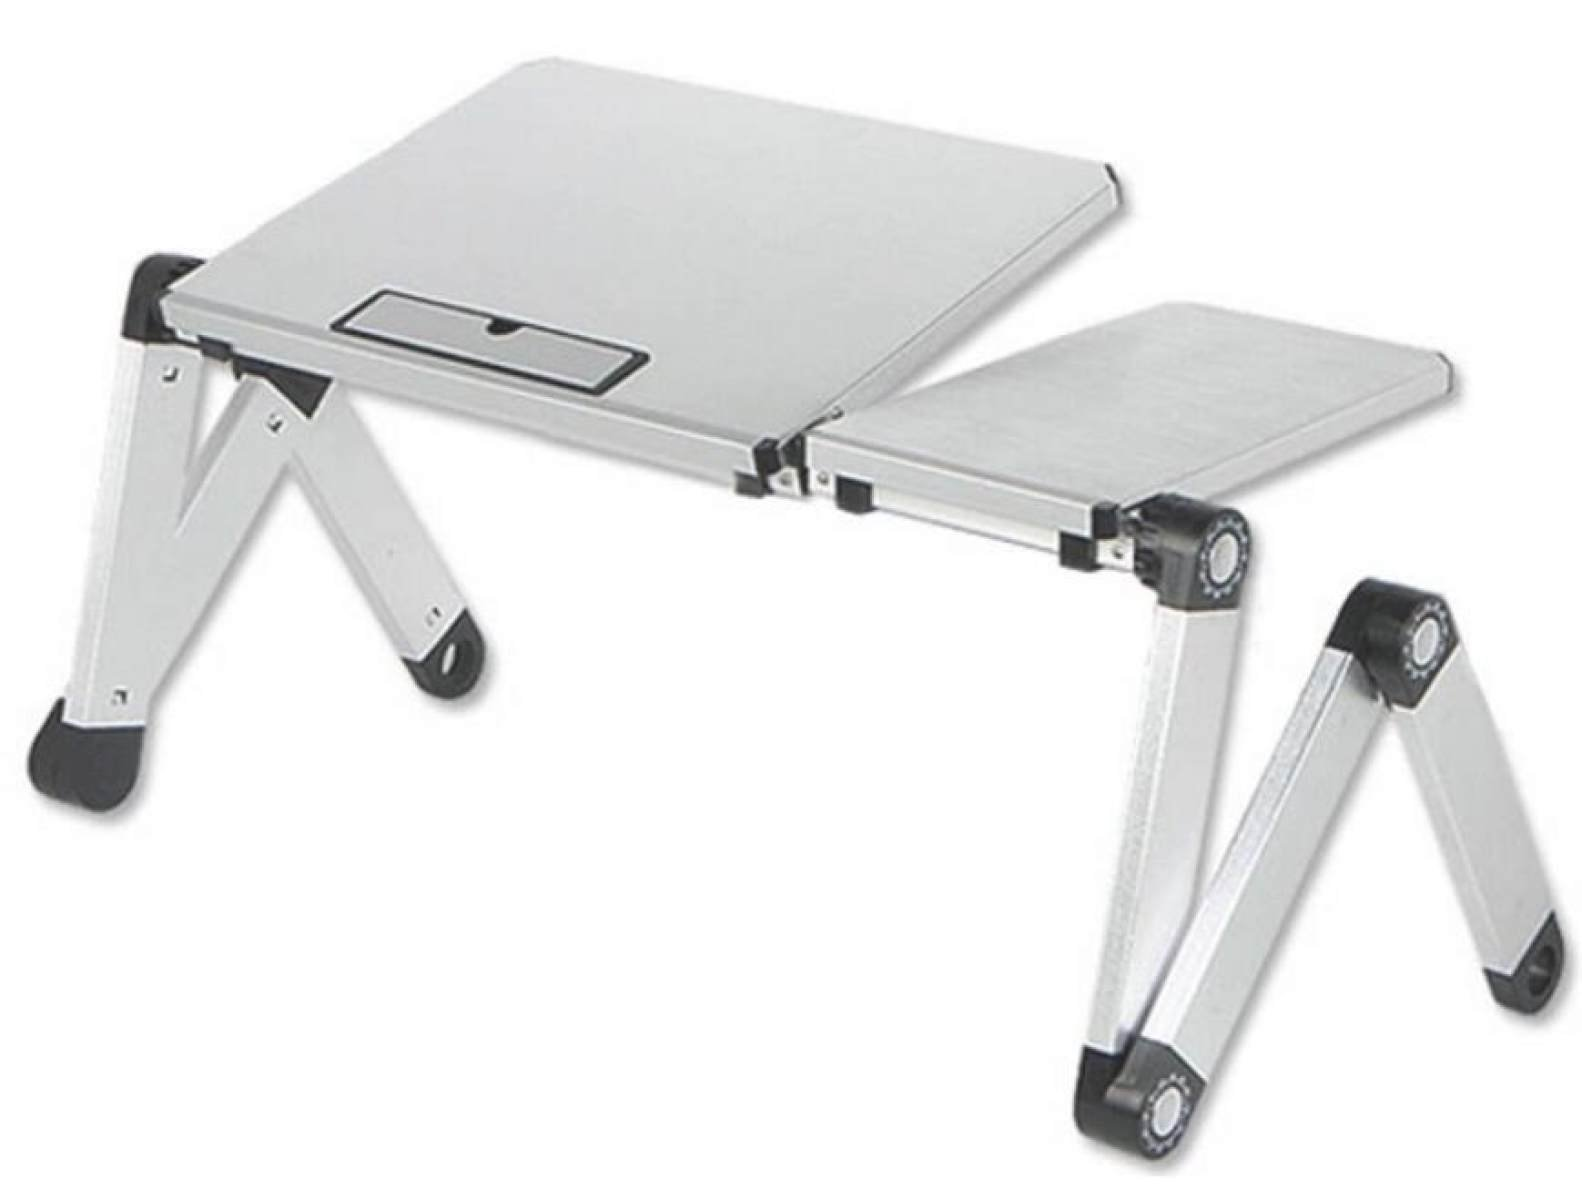 Laptop Table Aluminum Computer Table Bed Computer Table Folding Table Children 's Table Bed Tray,White-OneSize